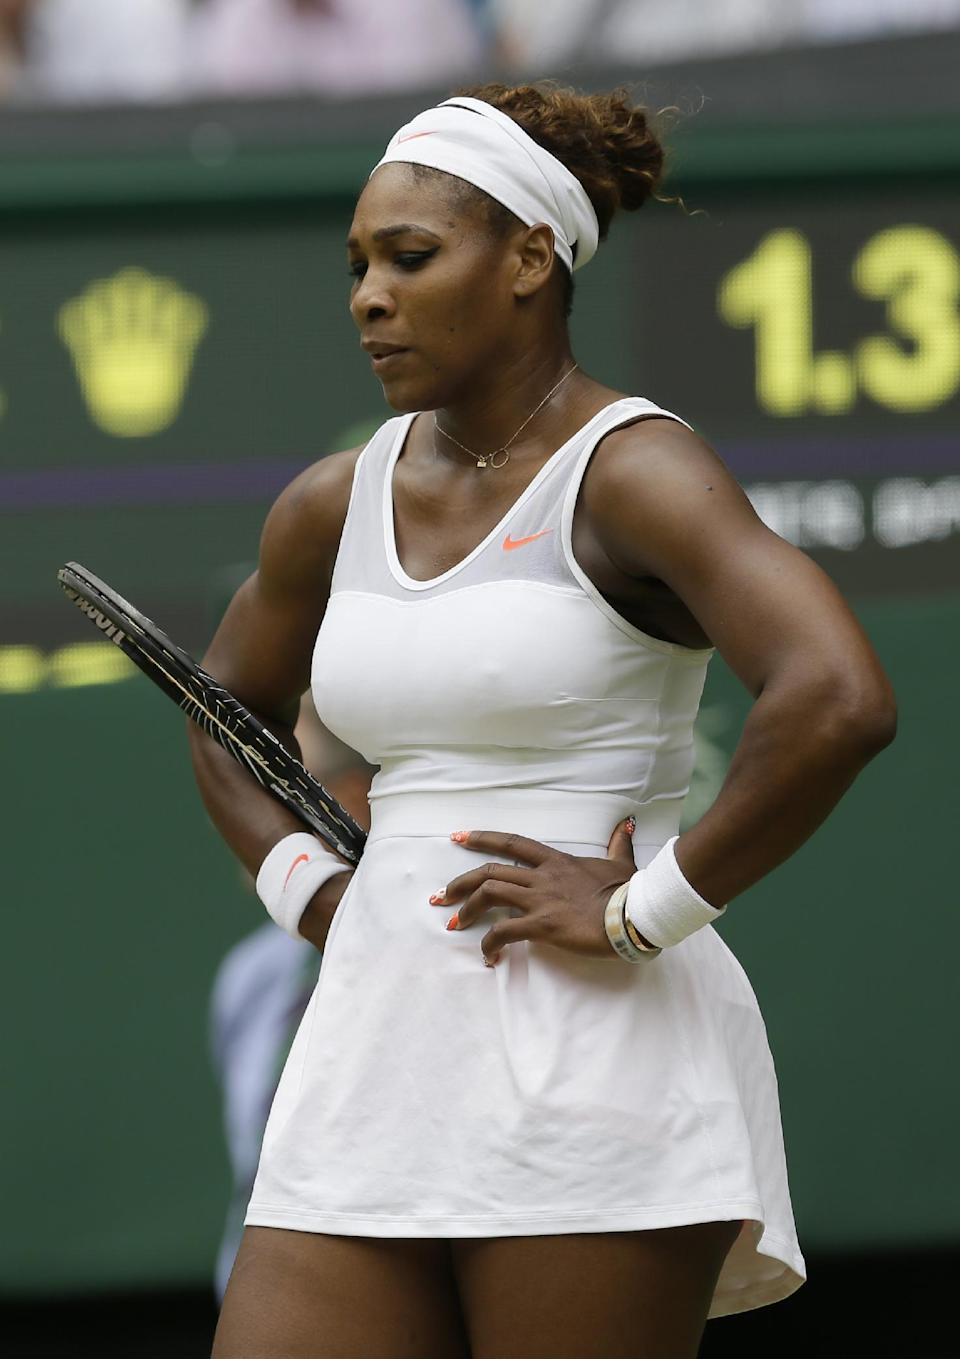 Serena Williams of the United States reacts during her Women's singles match against Sabine Lisicki of Germany at the All England Lawn Tennis Championships in Wimbledon, London, Monday, July 1, 2013. (AP Photo/Alastair Grant)